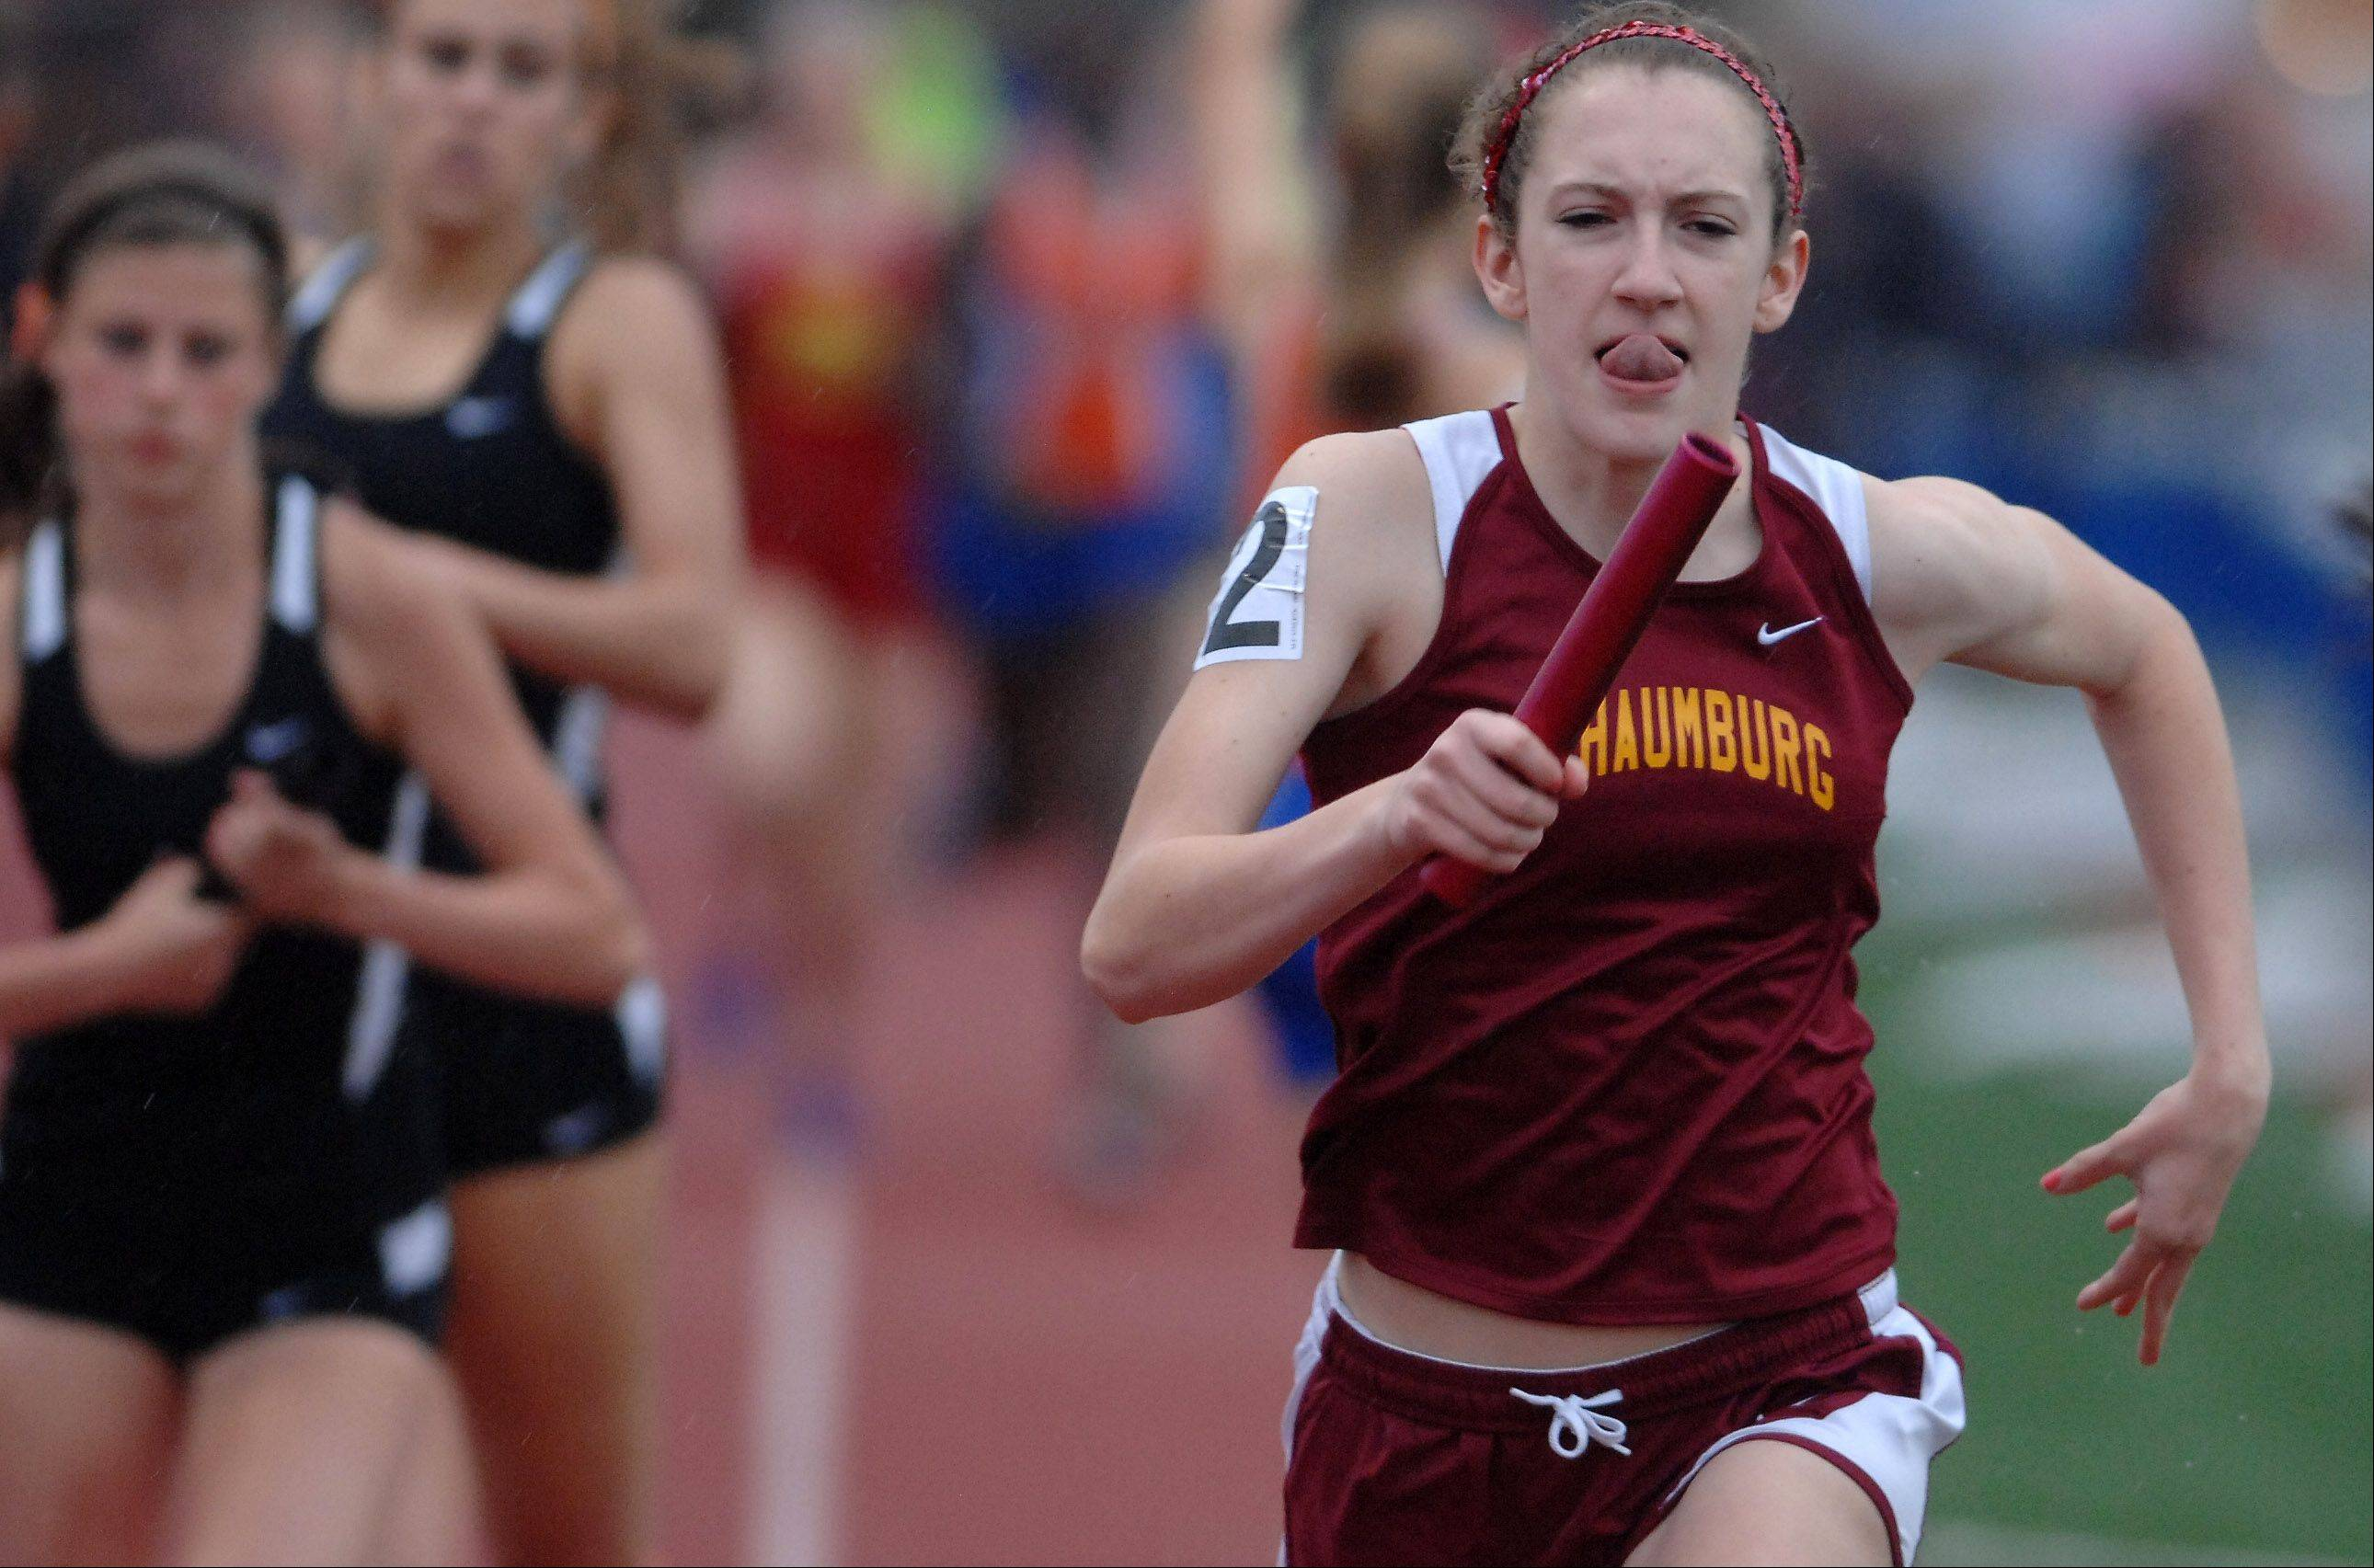 Erin Falsey of Schaumburg runs during the 3,200-meter relay Thursday at West Aurora girl's track sectional.